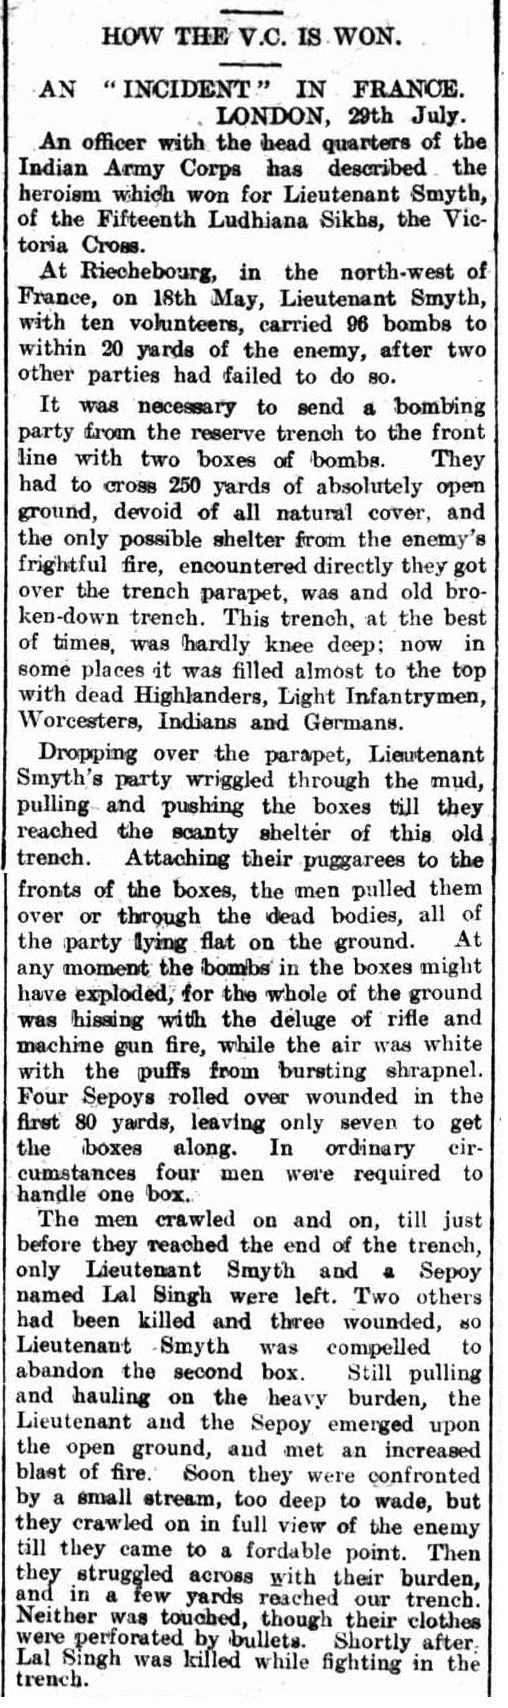 Page 37, Leader Newspaper (Melbourne), Saturday 31 July 1915